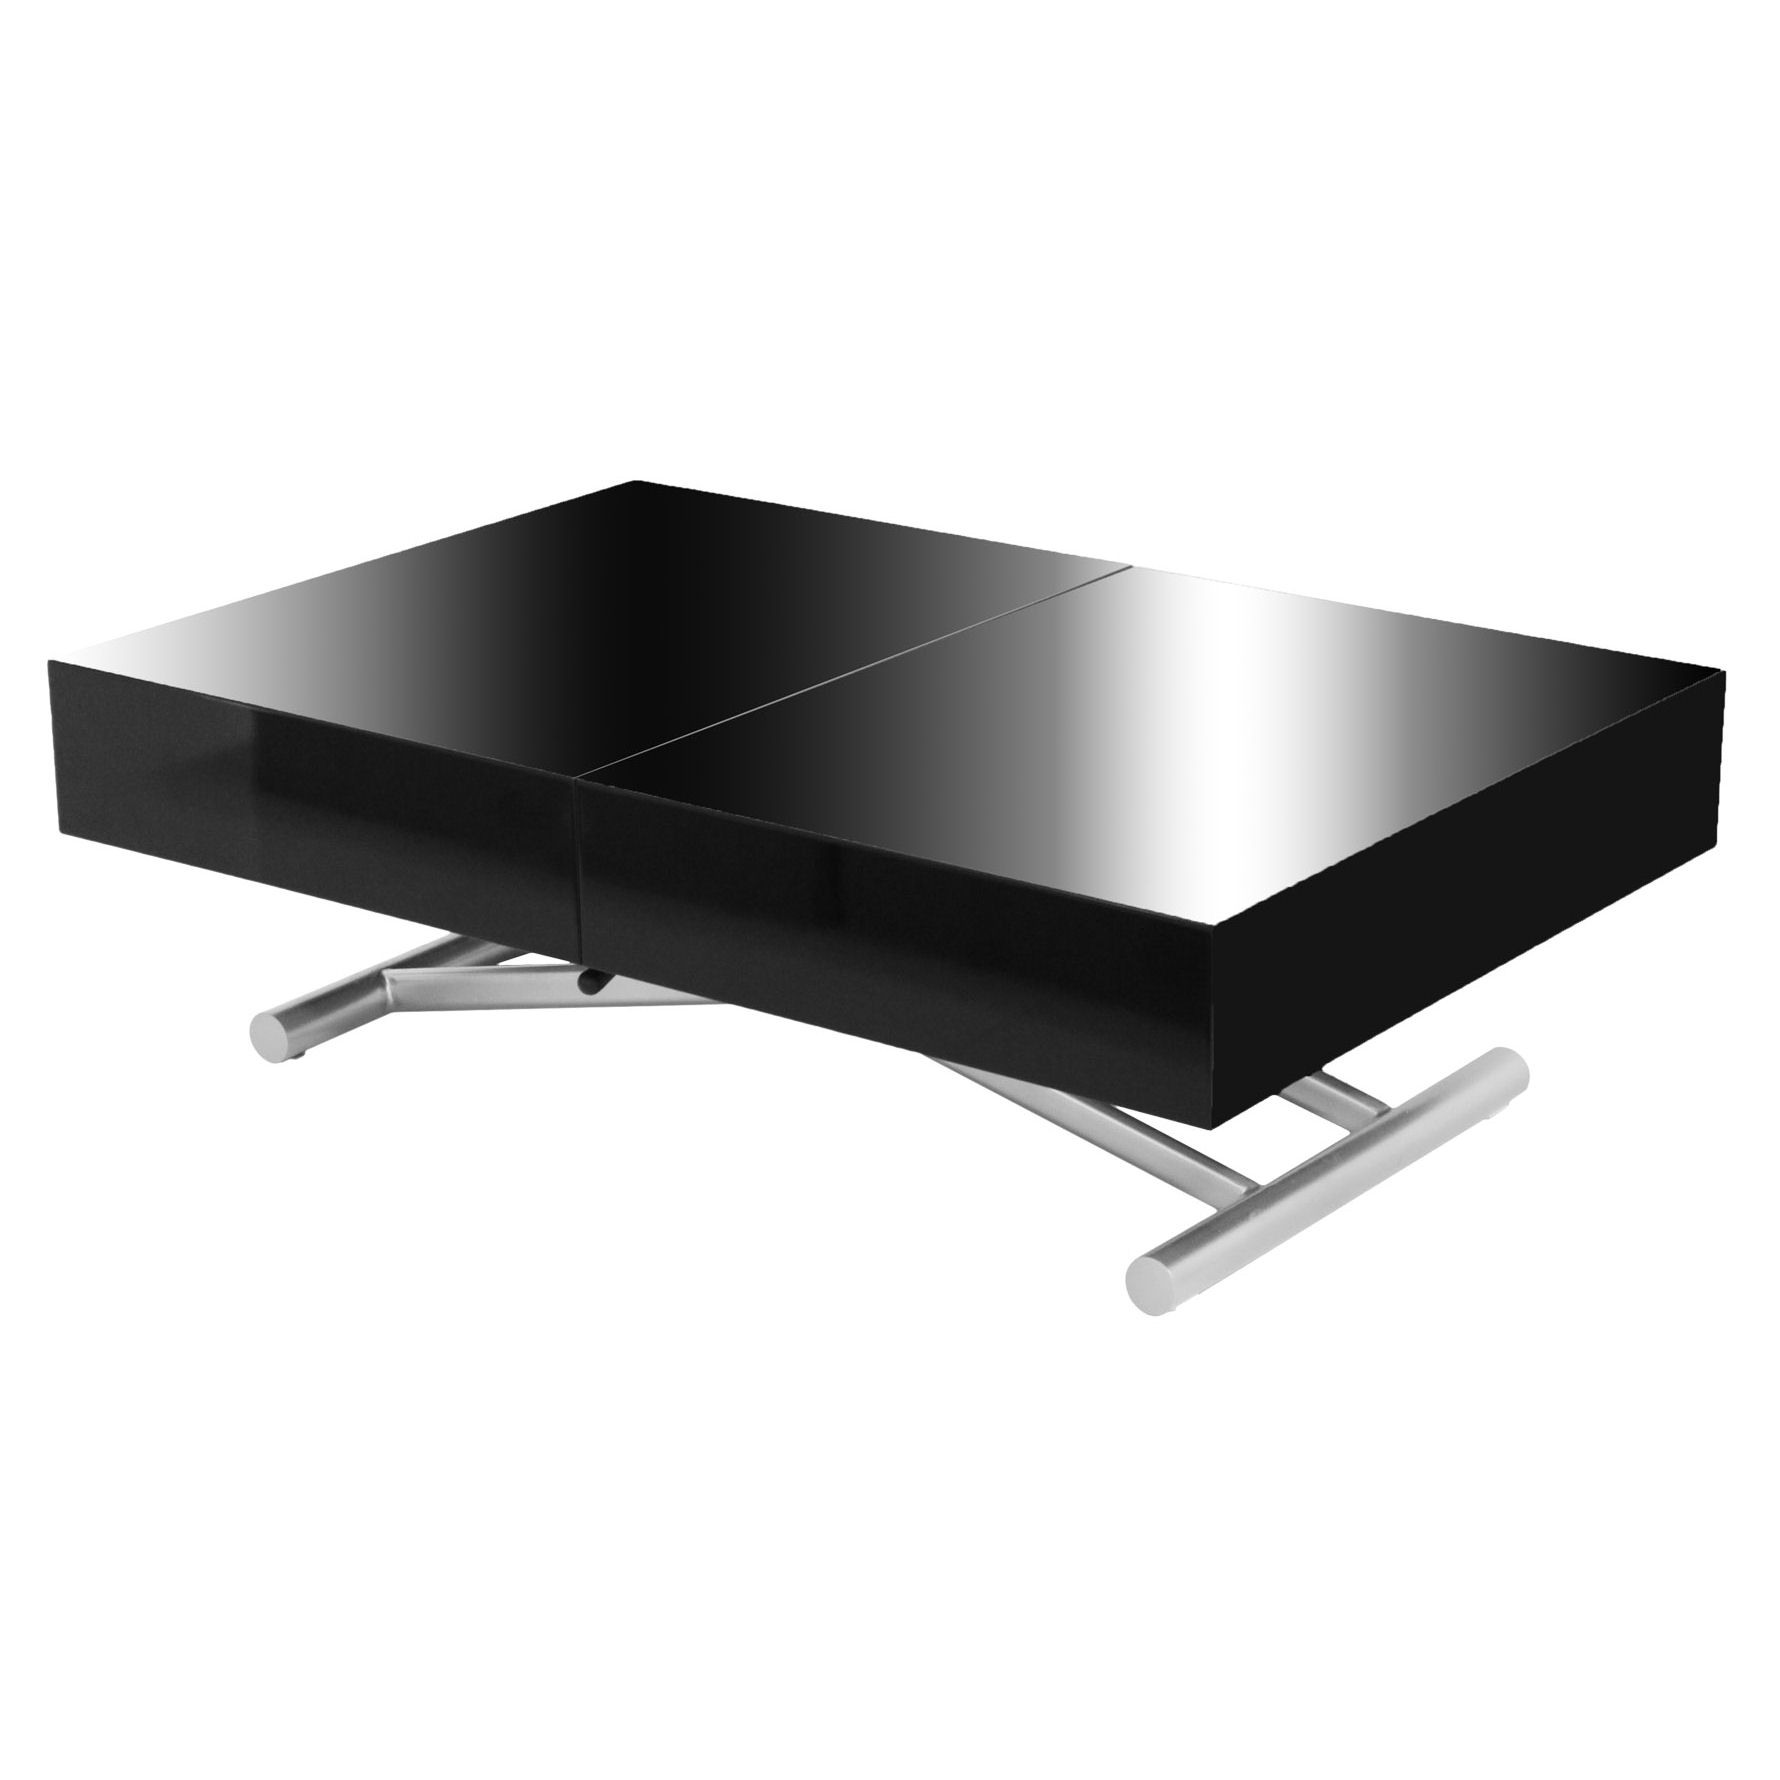 Table basse novy noire - Table basse relevable extensible alinea ...